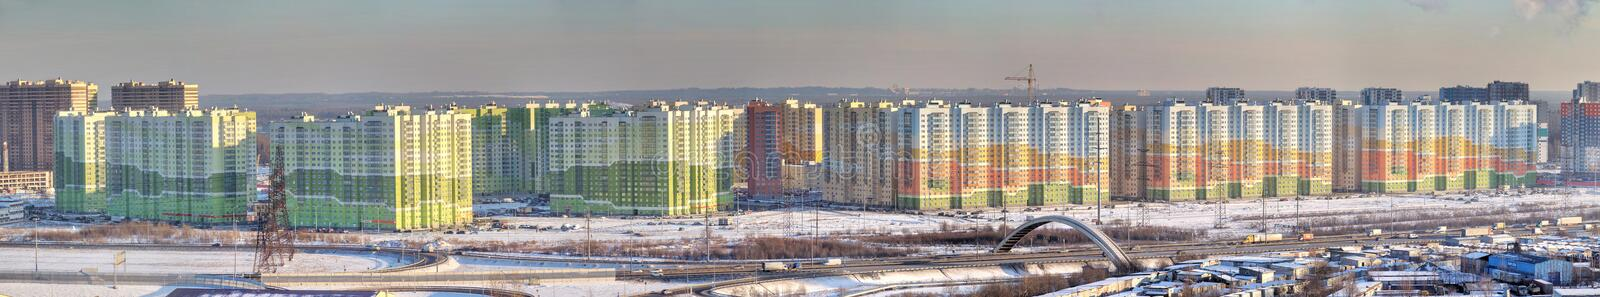 Panoramic photo, new residential area in north city, Saint-Petersburg, Russia. royalty free stock photos